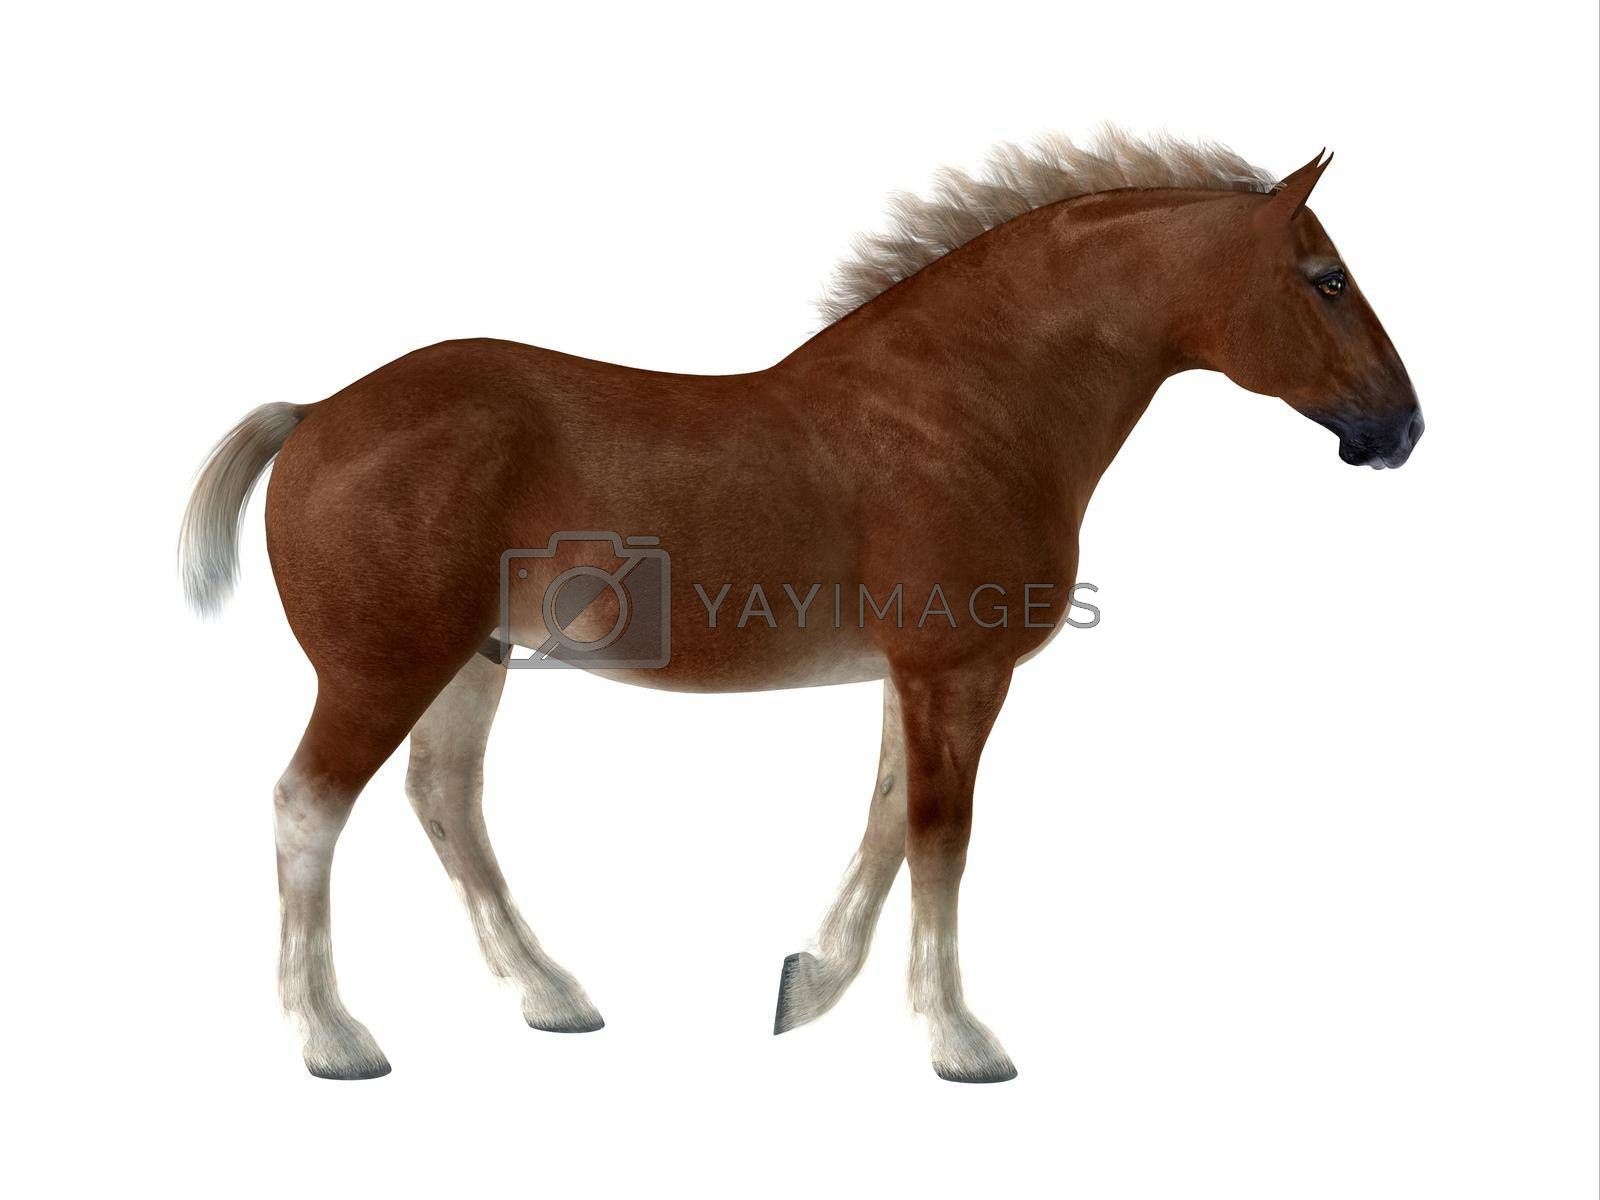 Royalty free image of Belgian Horse by Catmando